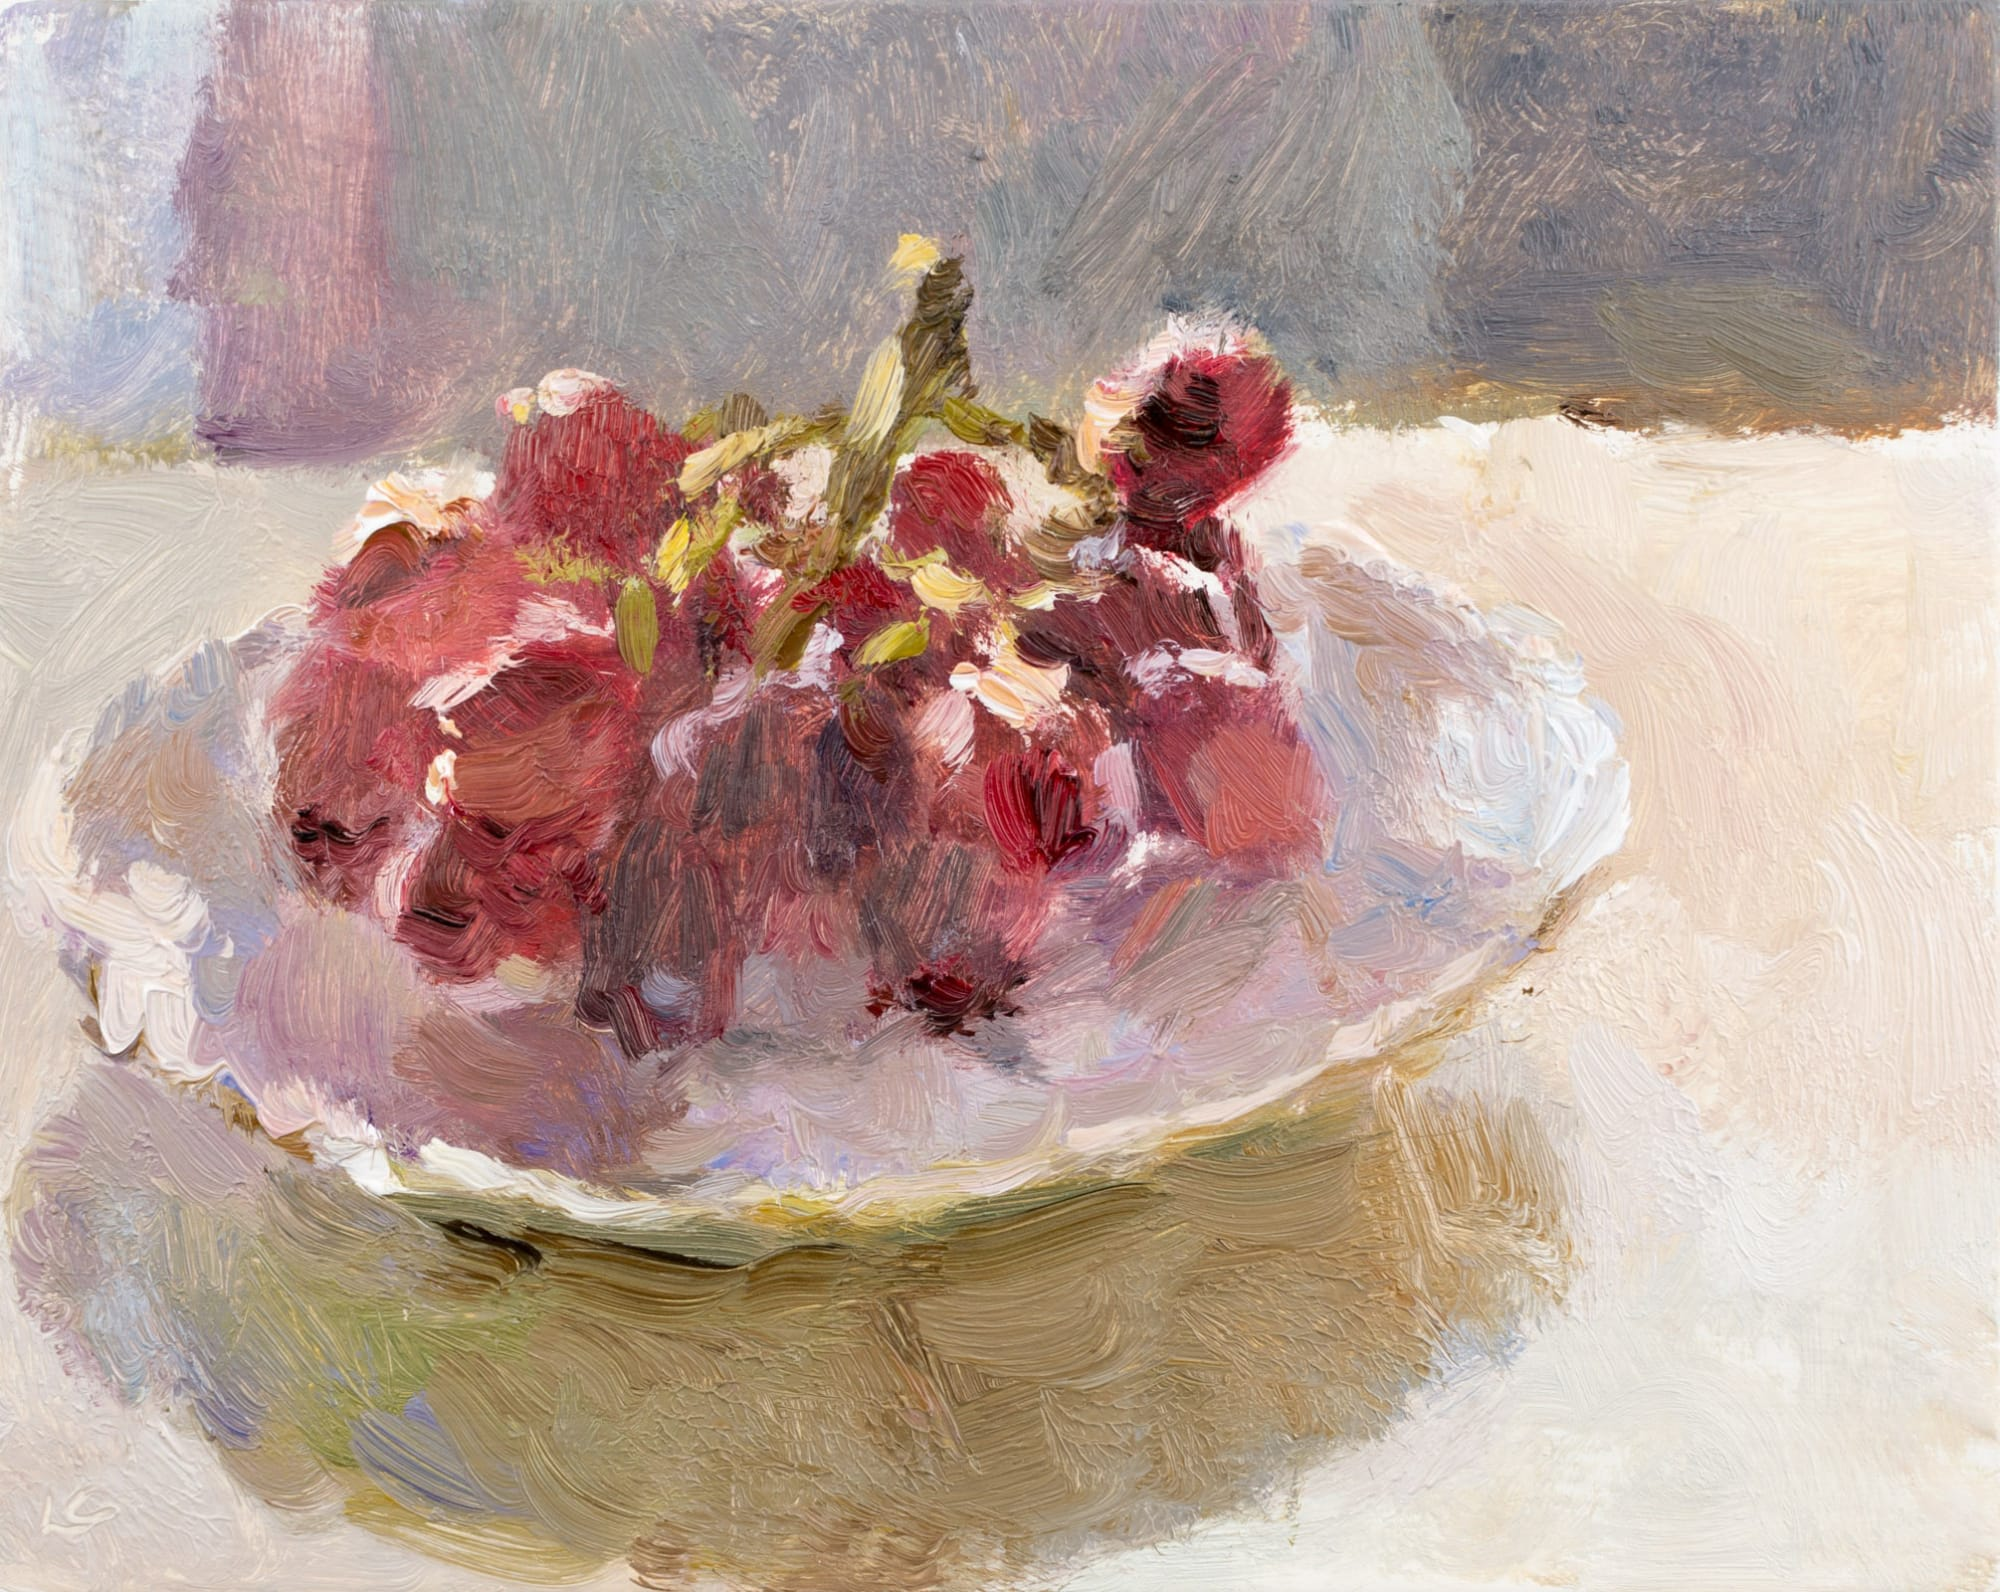 Lynne Cartlidge: Grapes in a Saucer